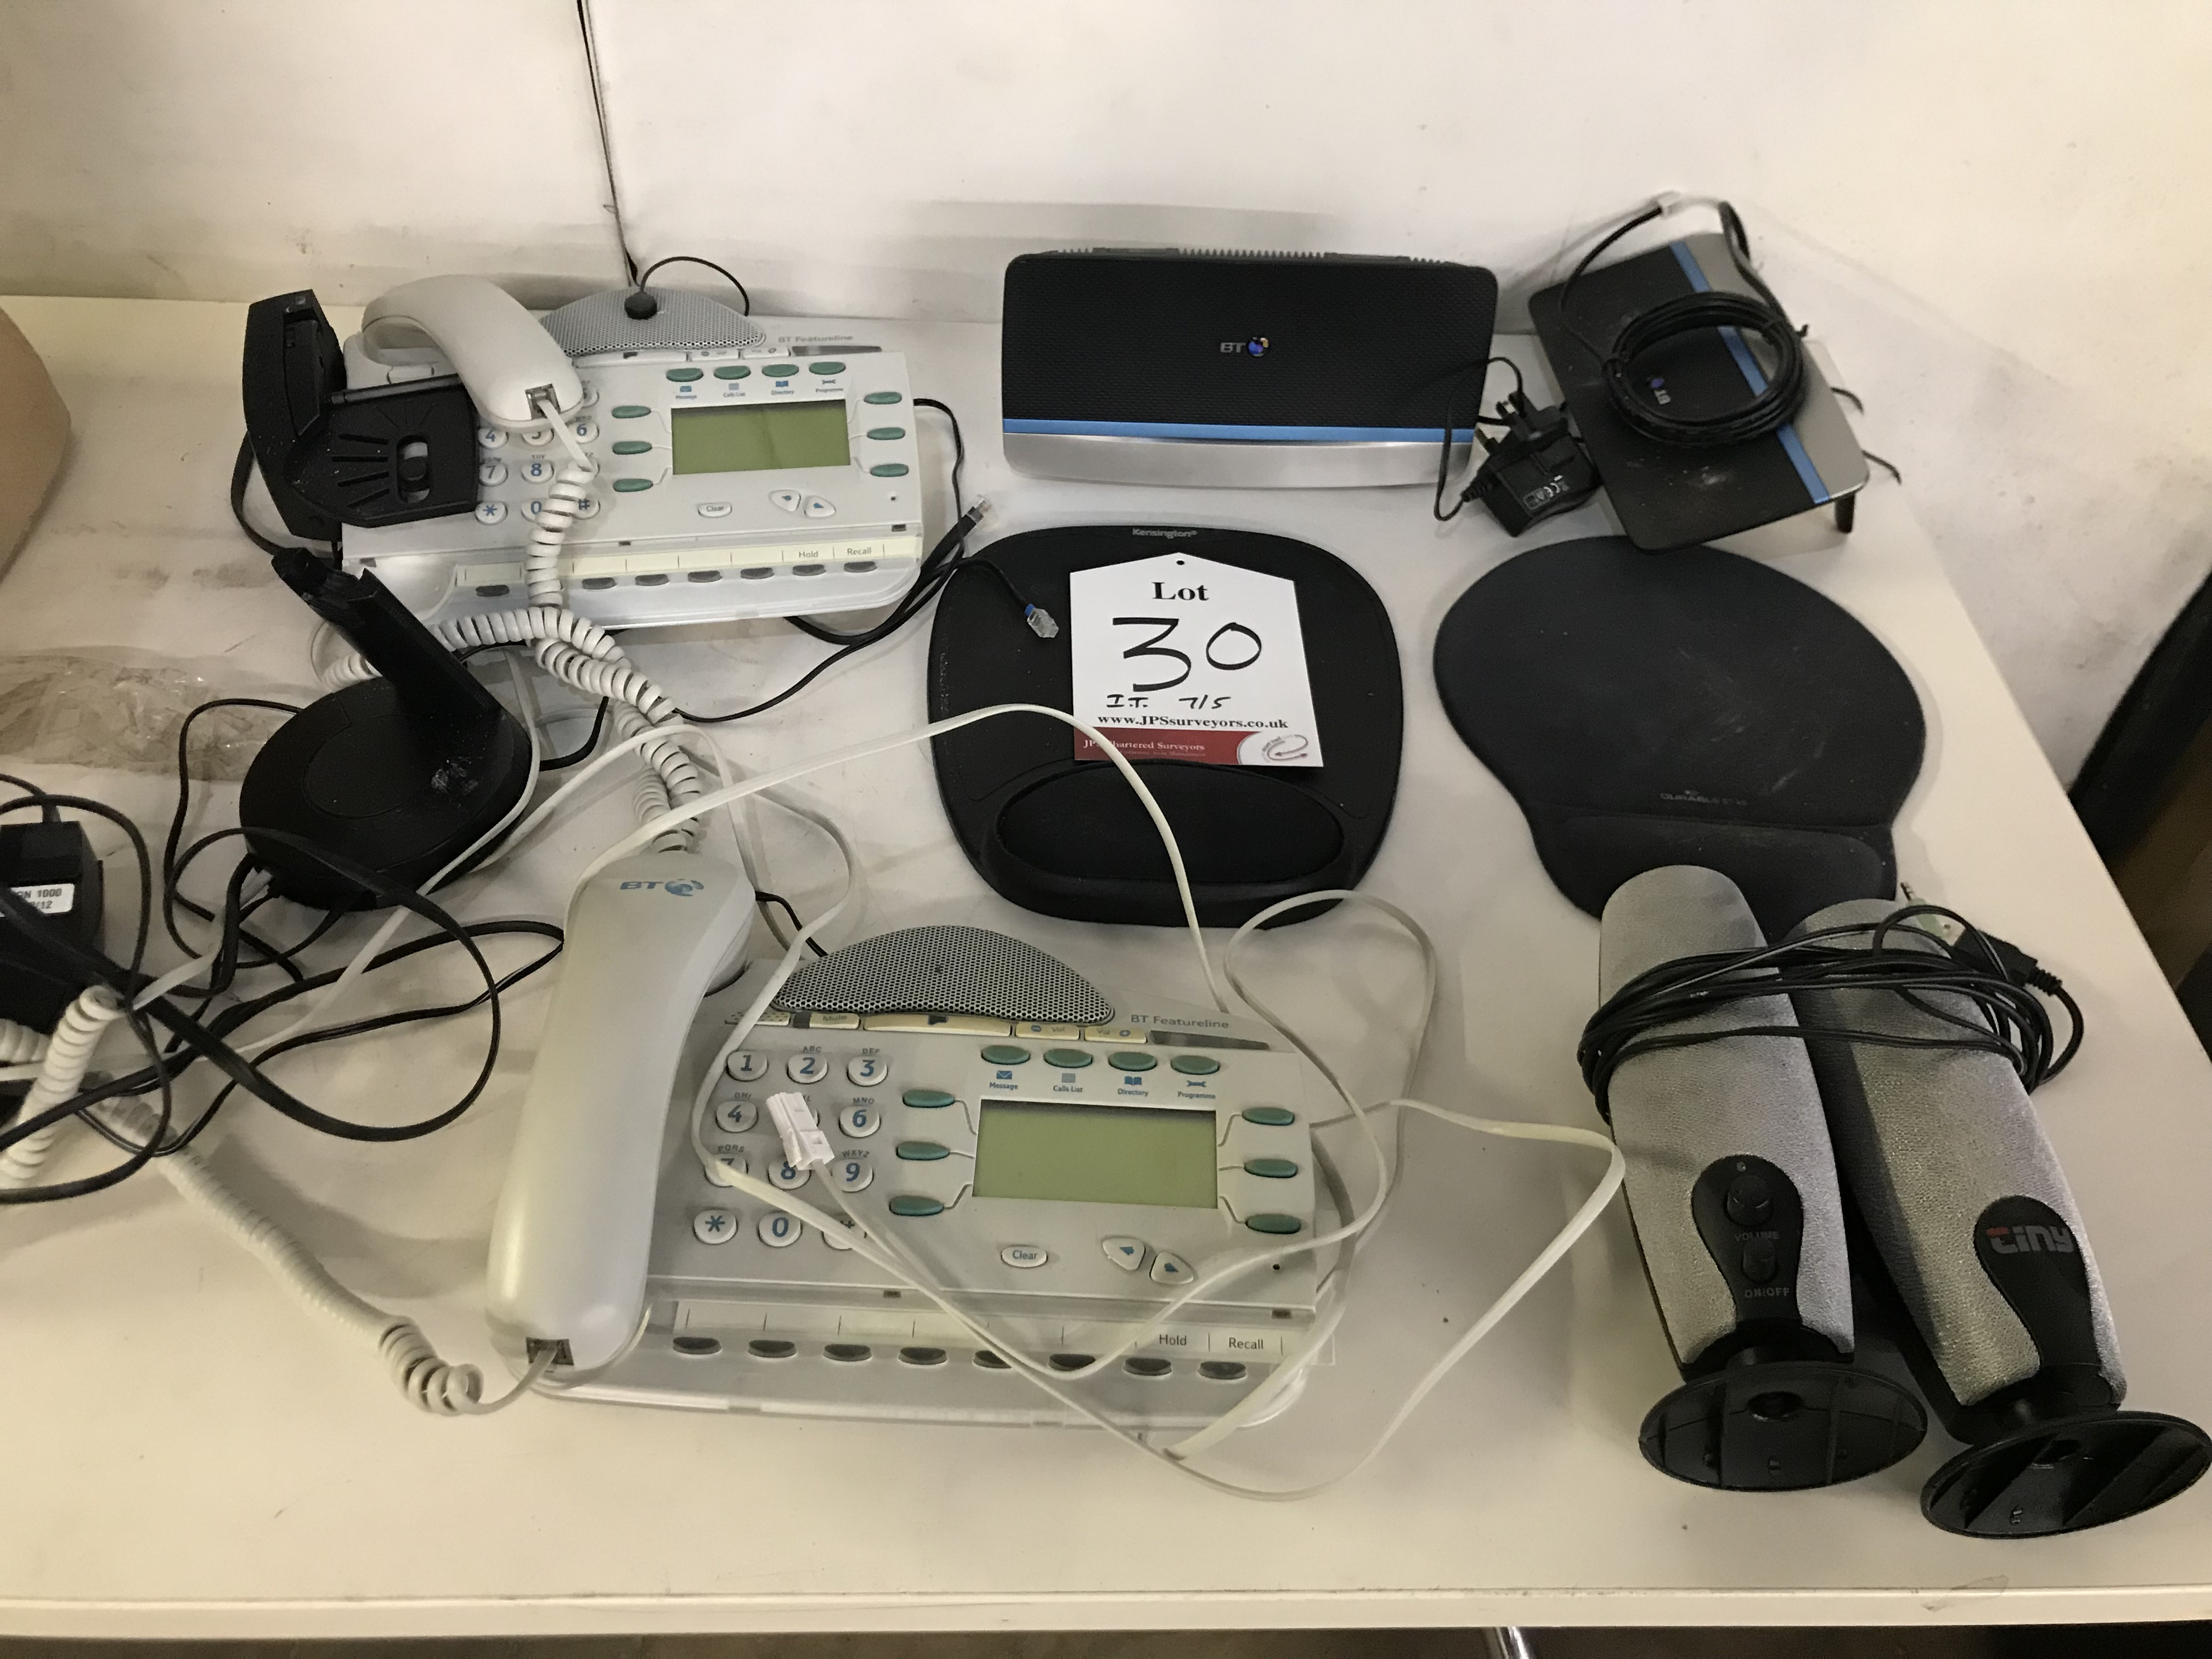 Lot 30 - Mixed lot of IT equipment - See pictures for details